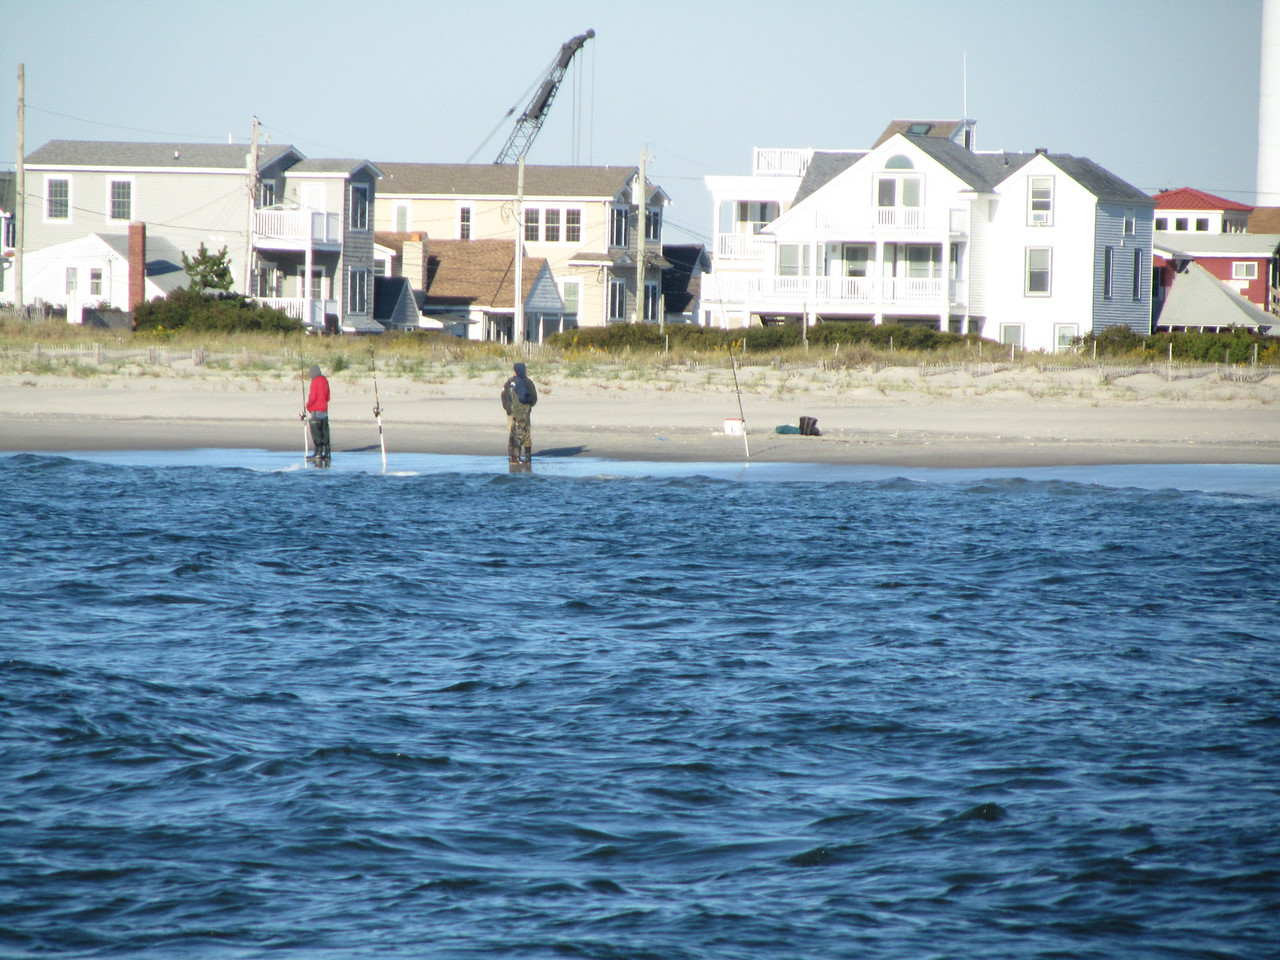 Shore fishermen looking for Stripers as well.